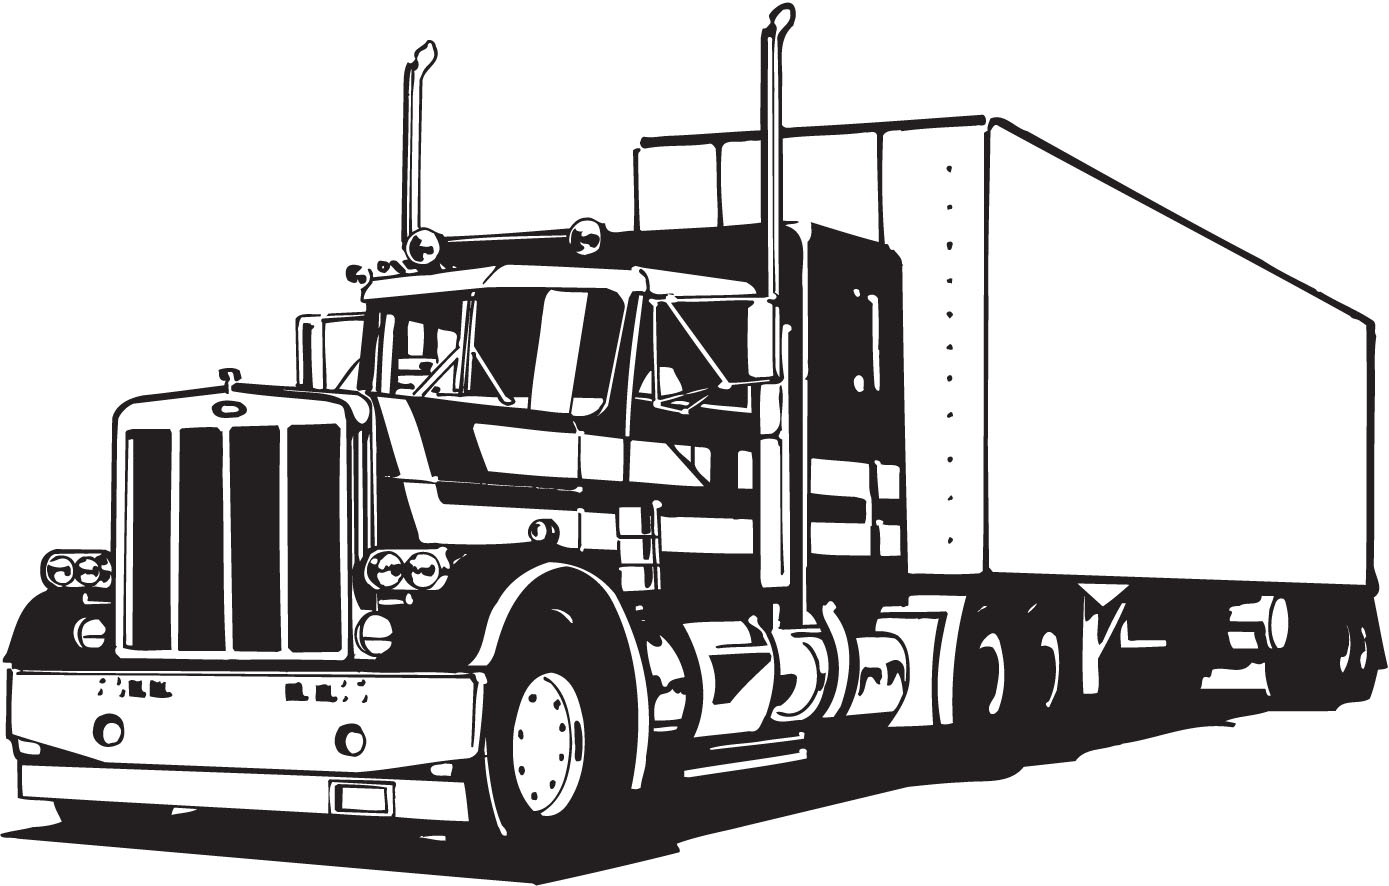 Clip Art Semi Truck Clipart semi truck clipart kid vectorian art lineart vectorfree download free vector